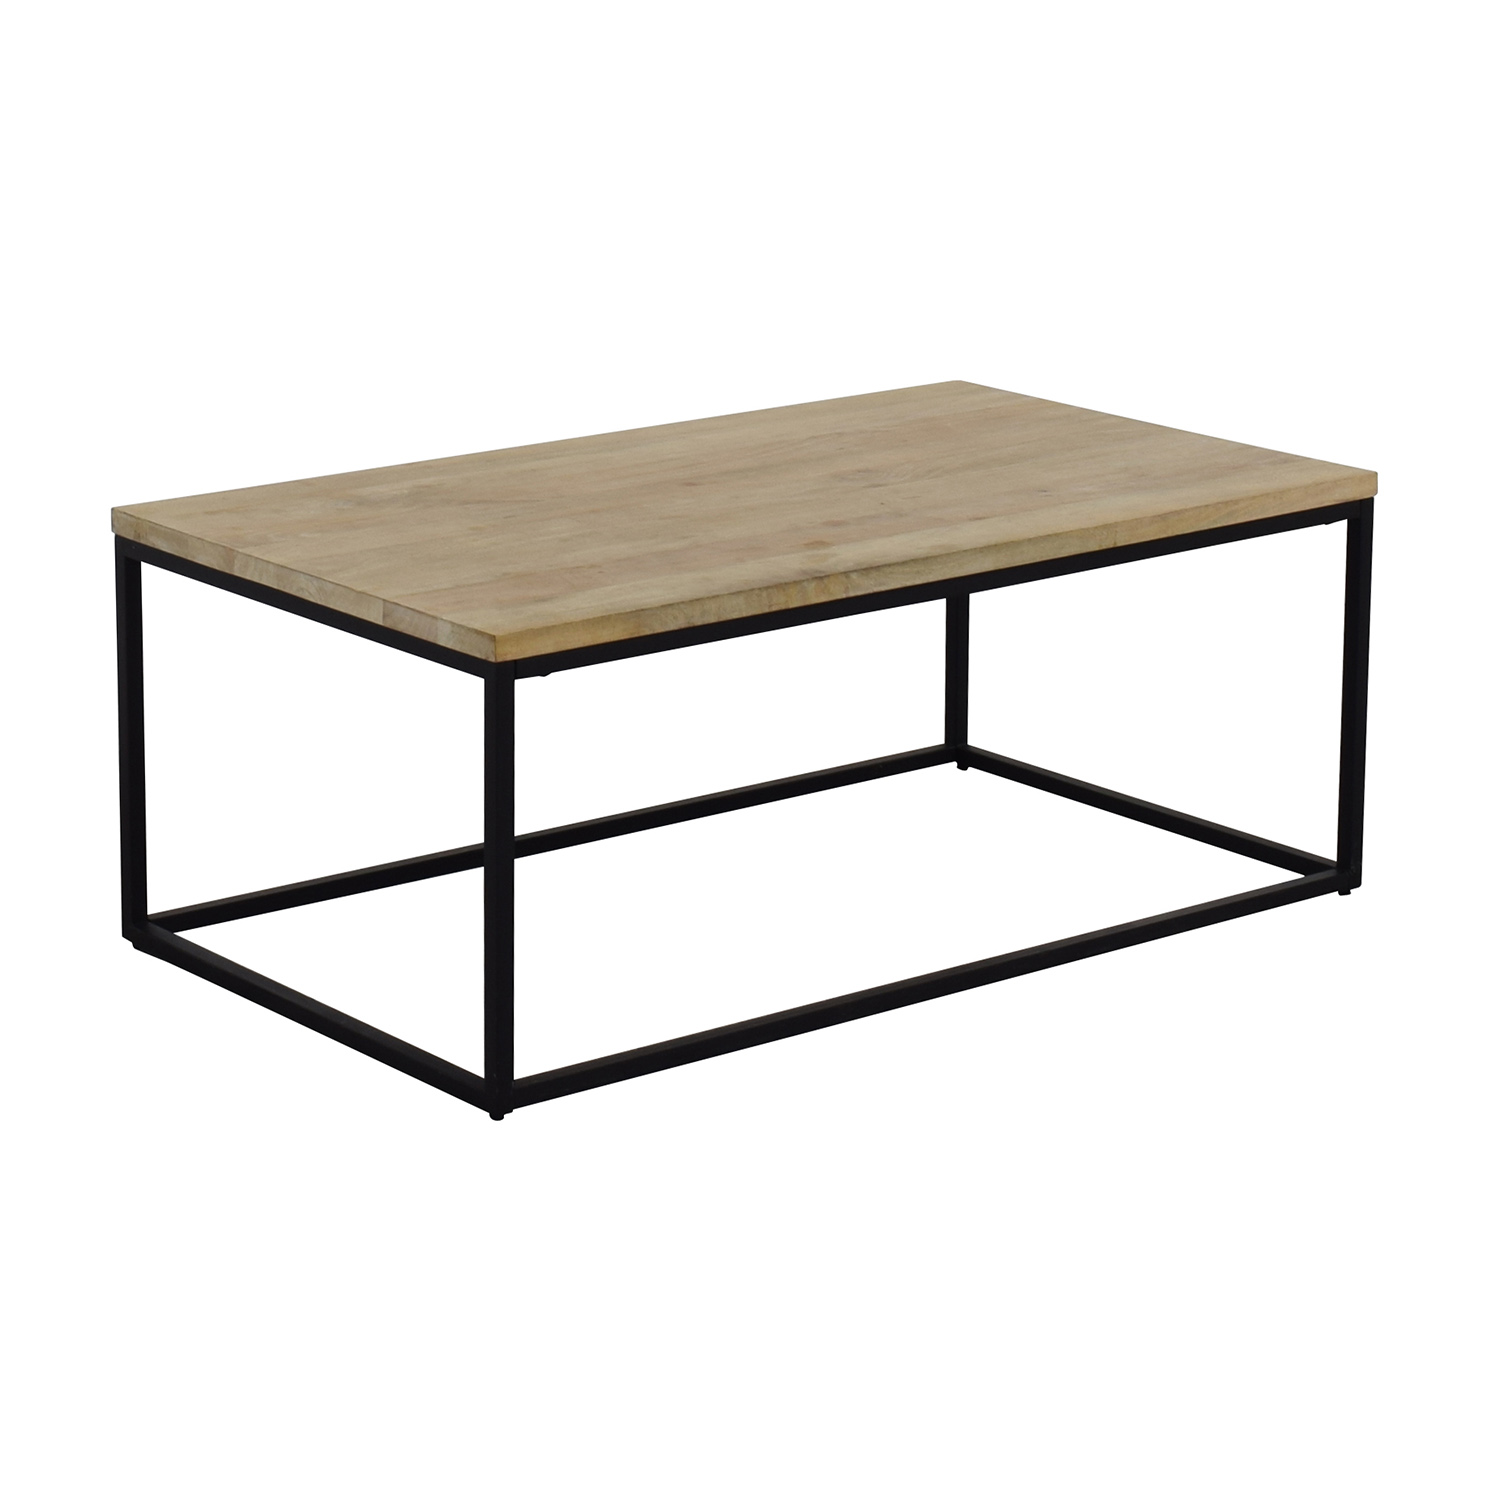 55% OFF West Elm West Elm Box Frame Coffee Table Tables